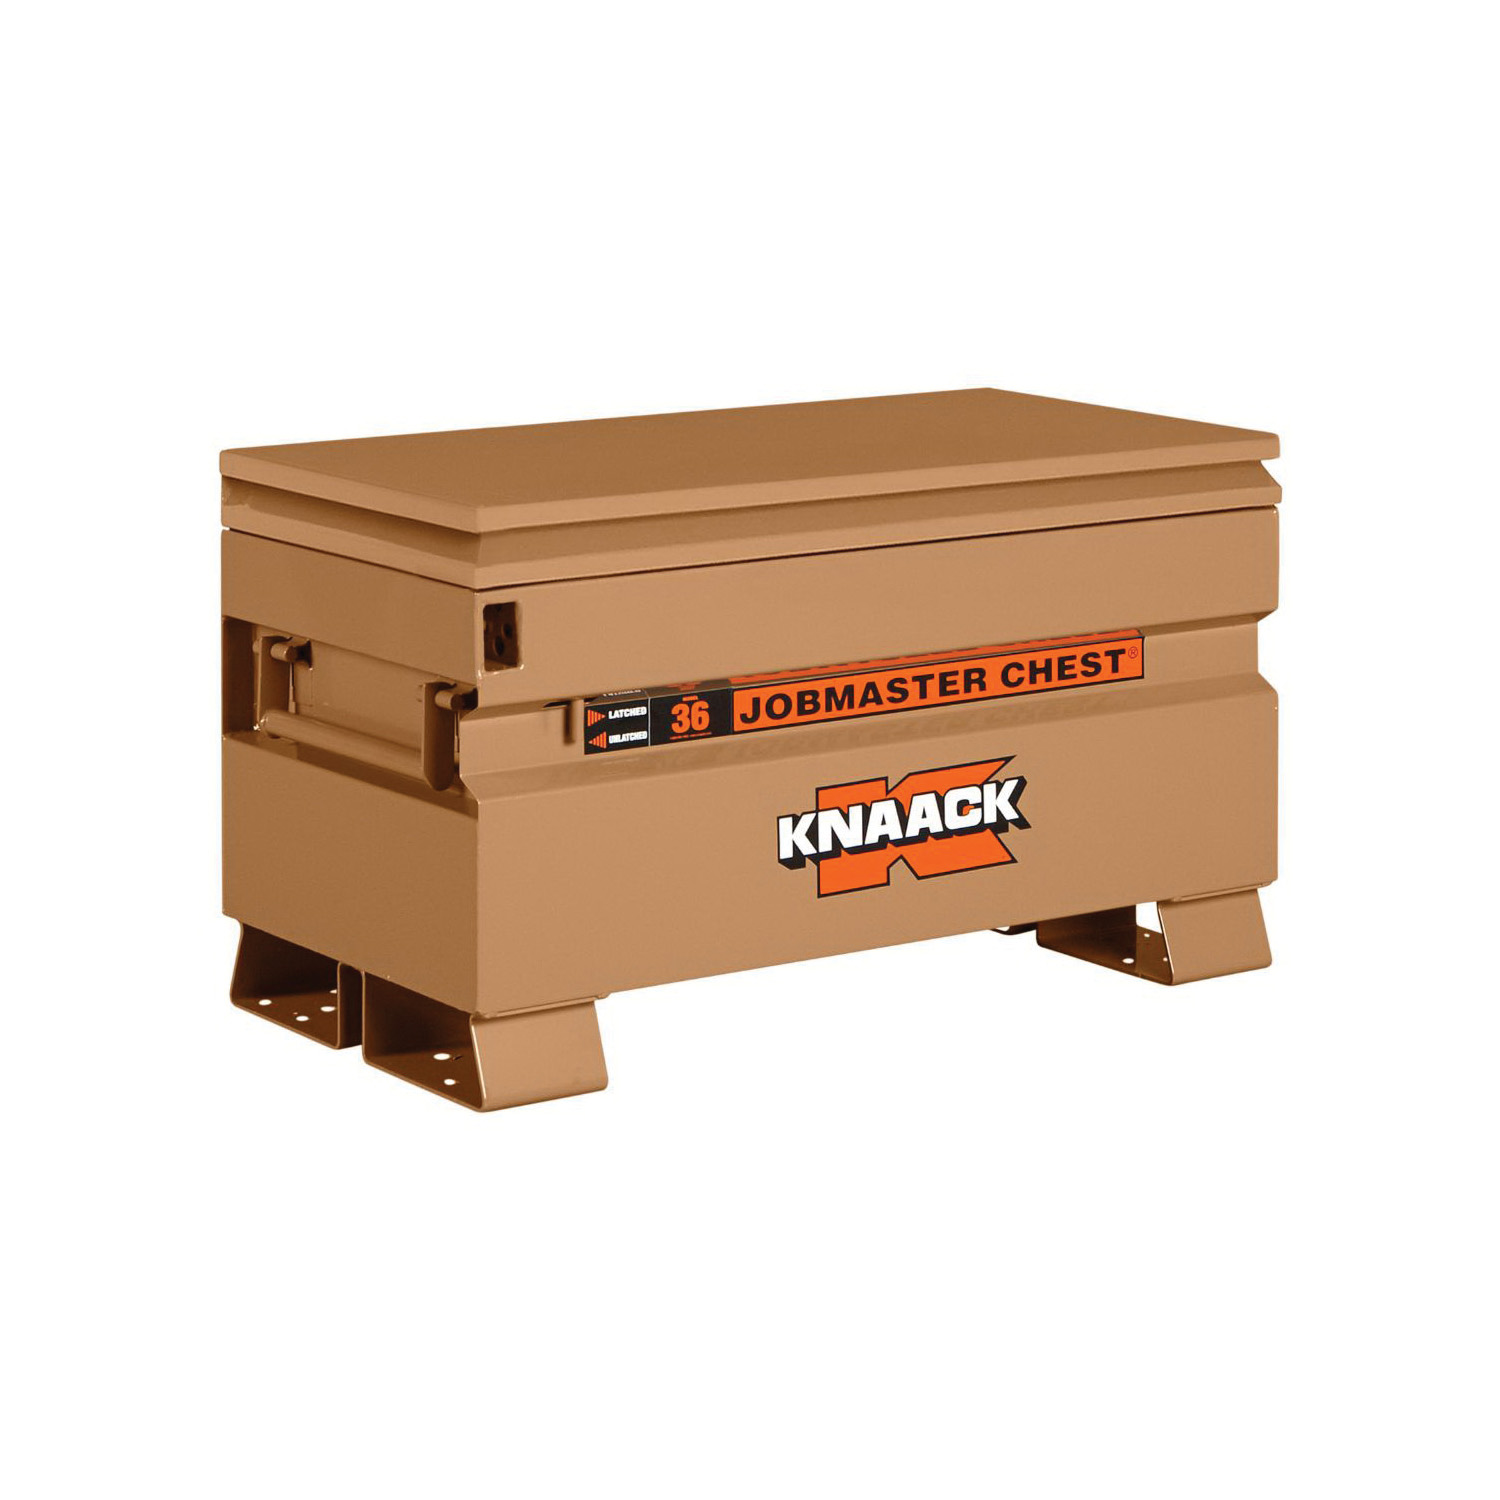 KNAACK® JOBMASTER® 36 Chest Box, 21-1/2 in x 19 in W x 36 in D, 7 cu-ft Storage, Steel